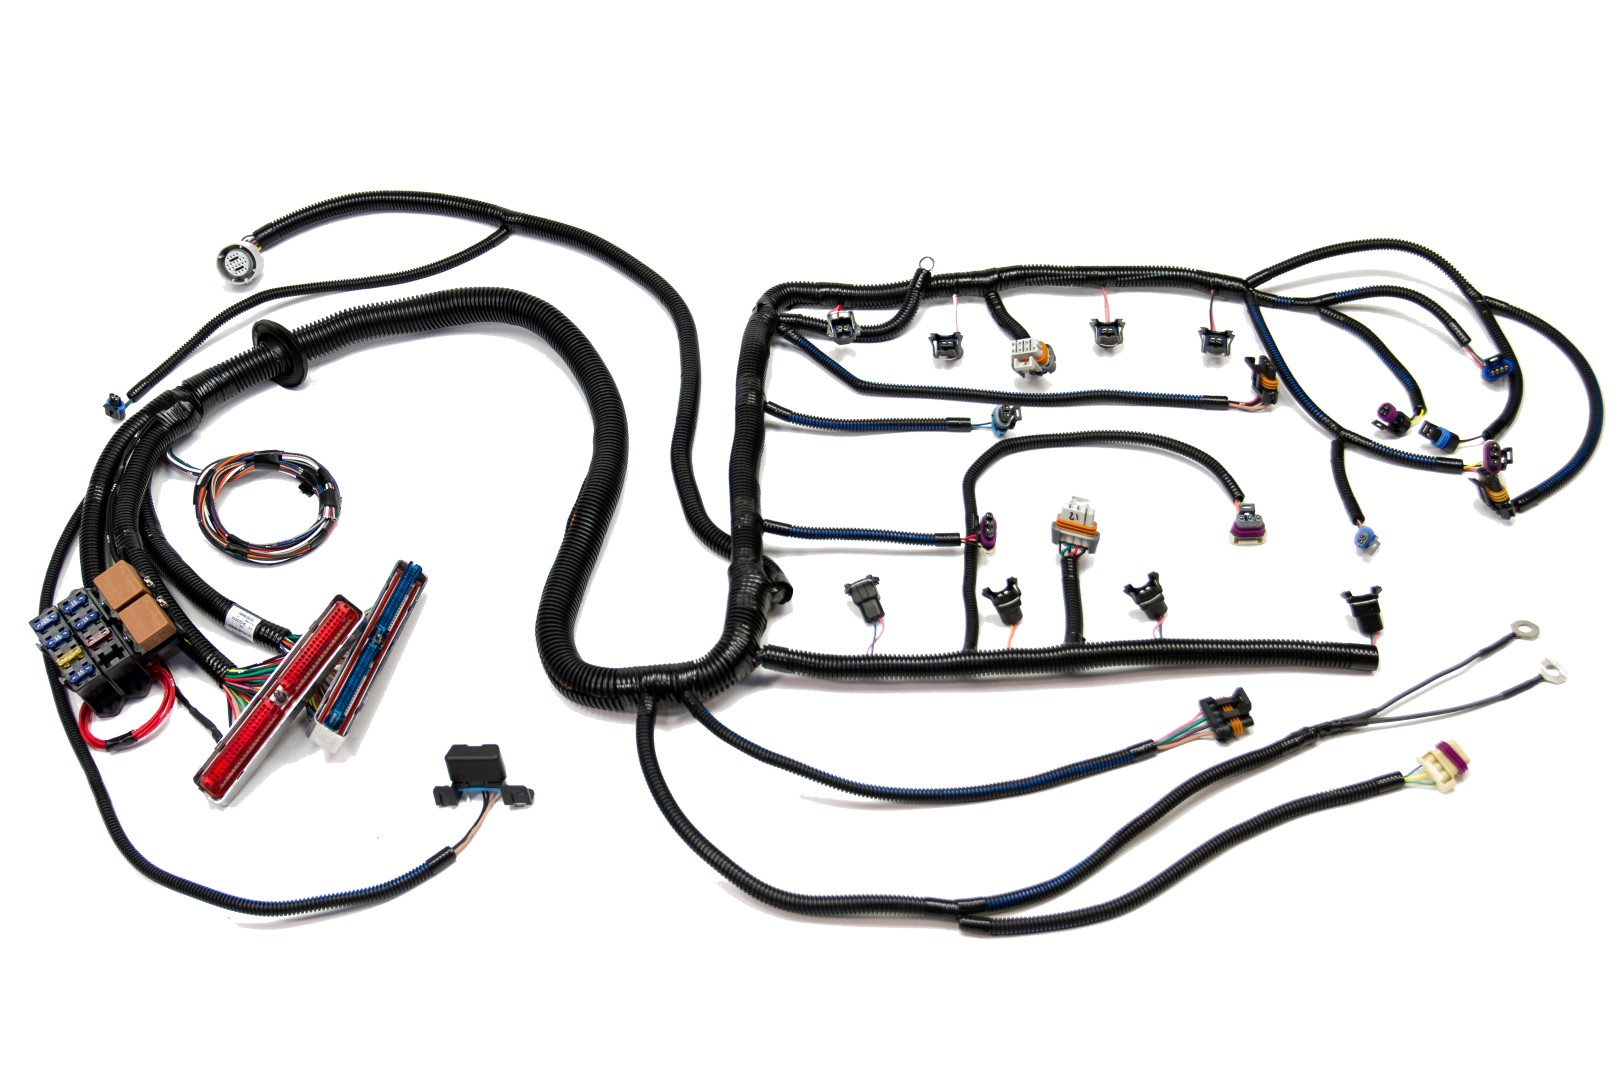 hight resolution of psi standalone wiring harness ls wiring ls wiring harness ecm pcm